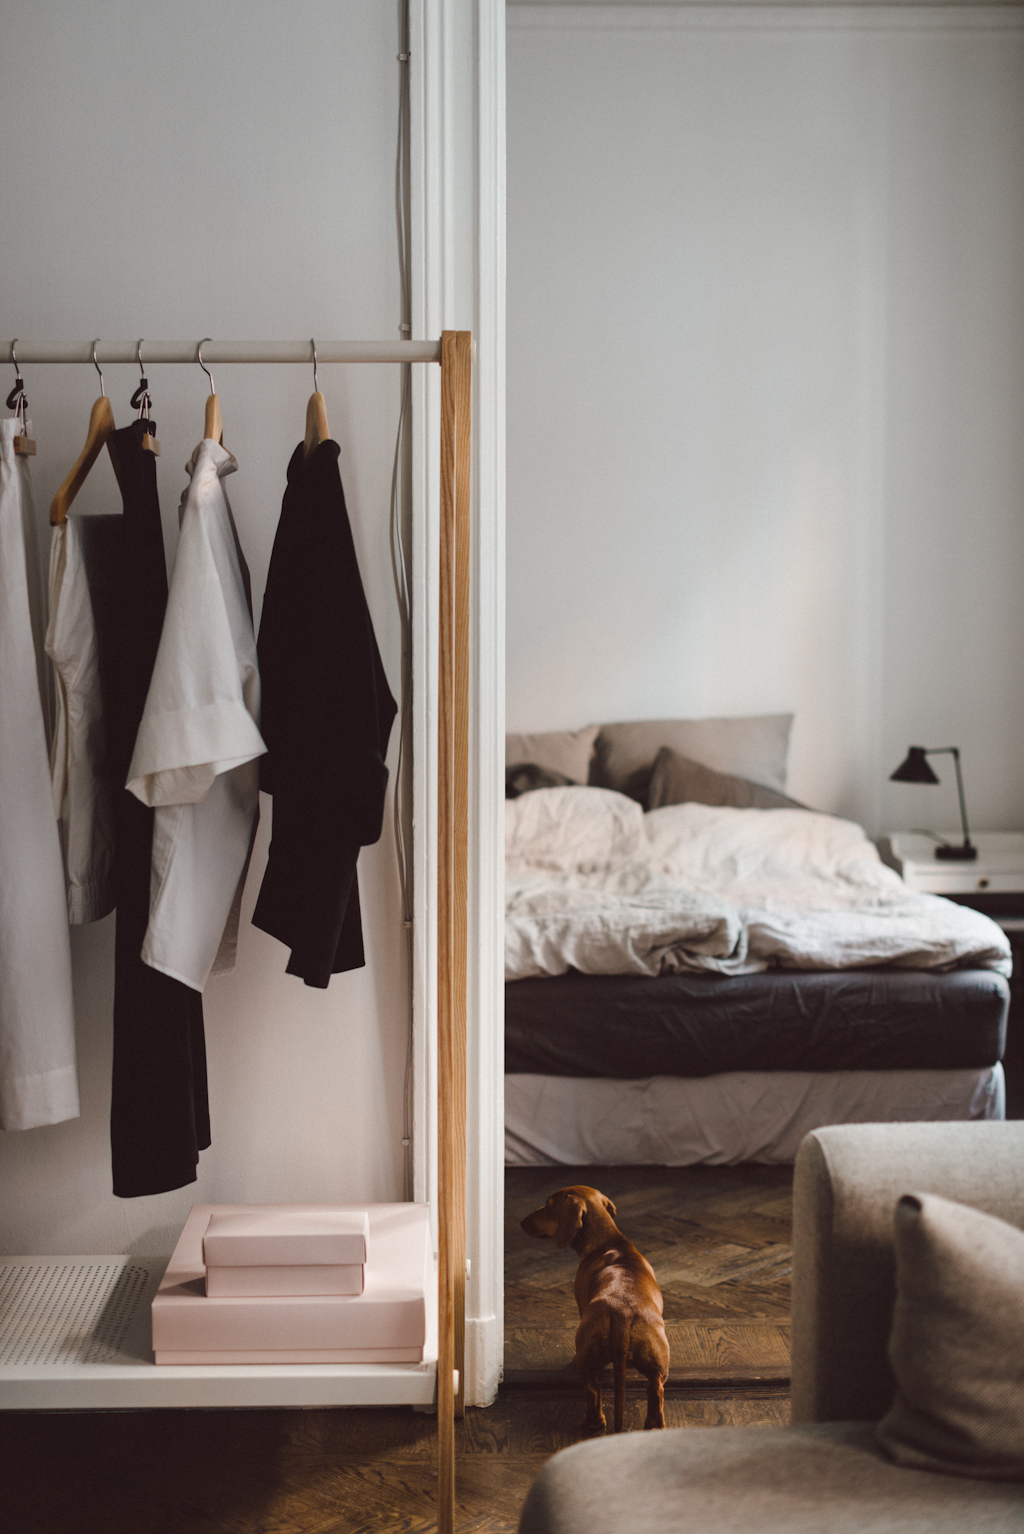 Sunday Stockholm by Babes in Boyland